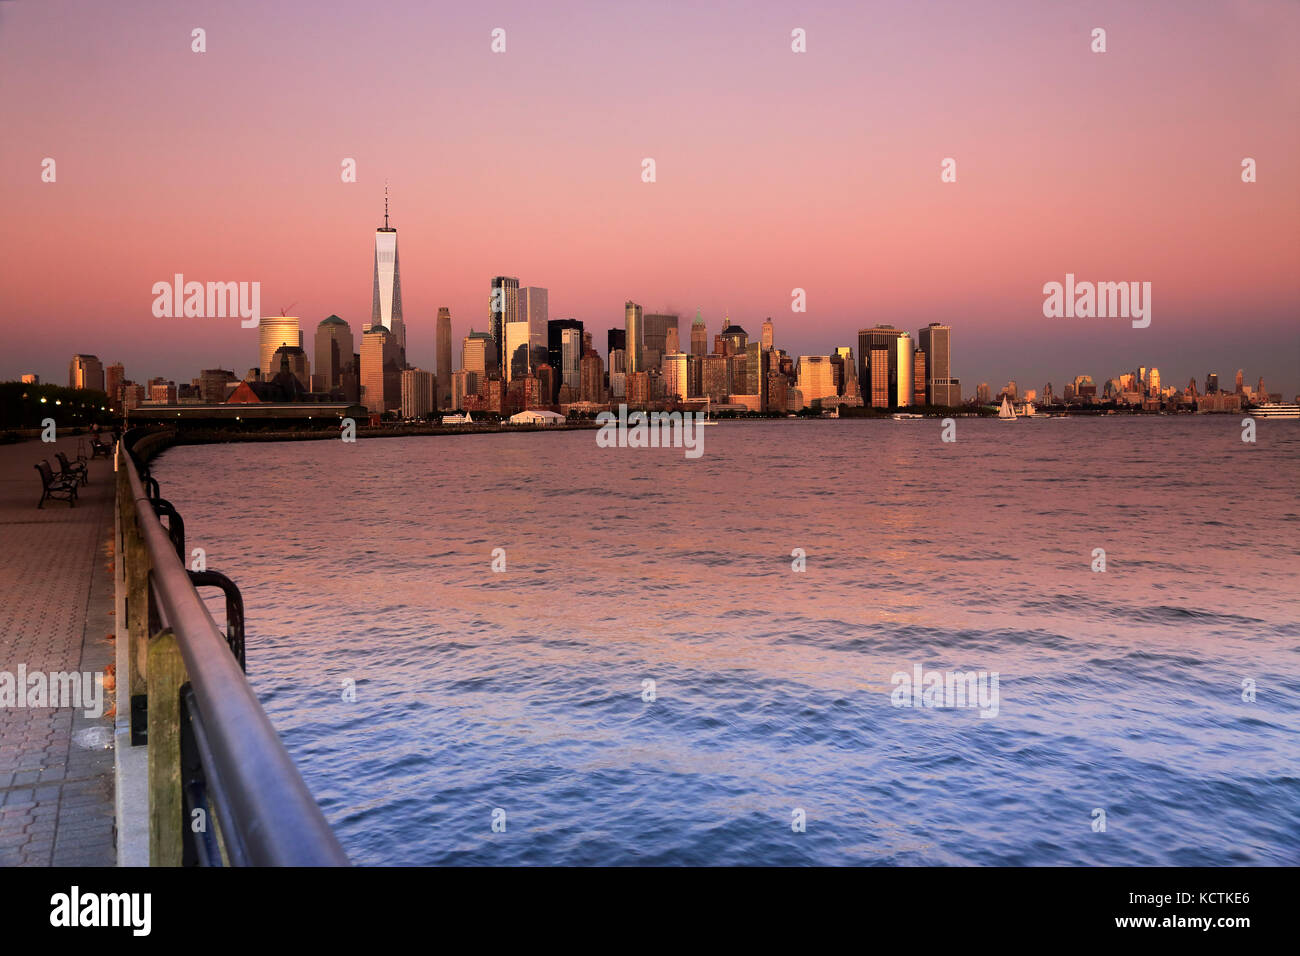 Sunset view of Lower Manhattan financial district with Hudson River in foreground.New York City,USA - Stock Image